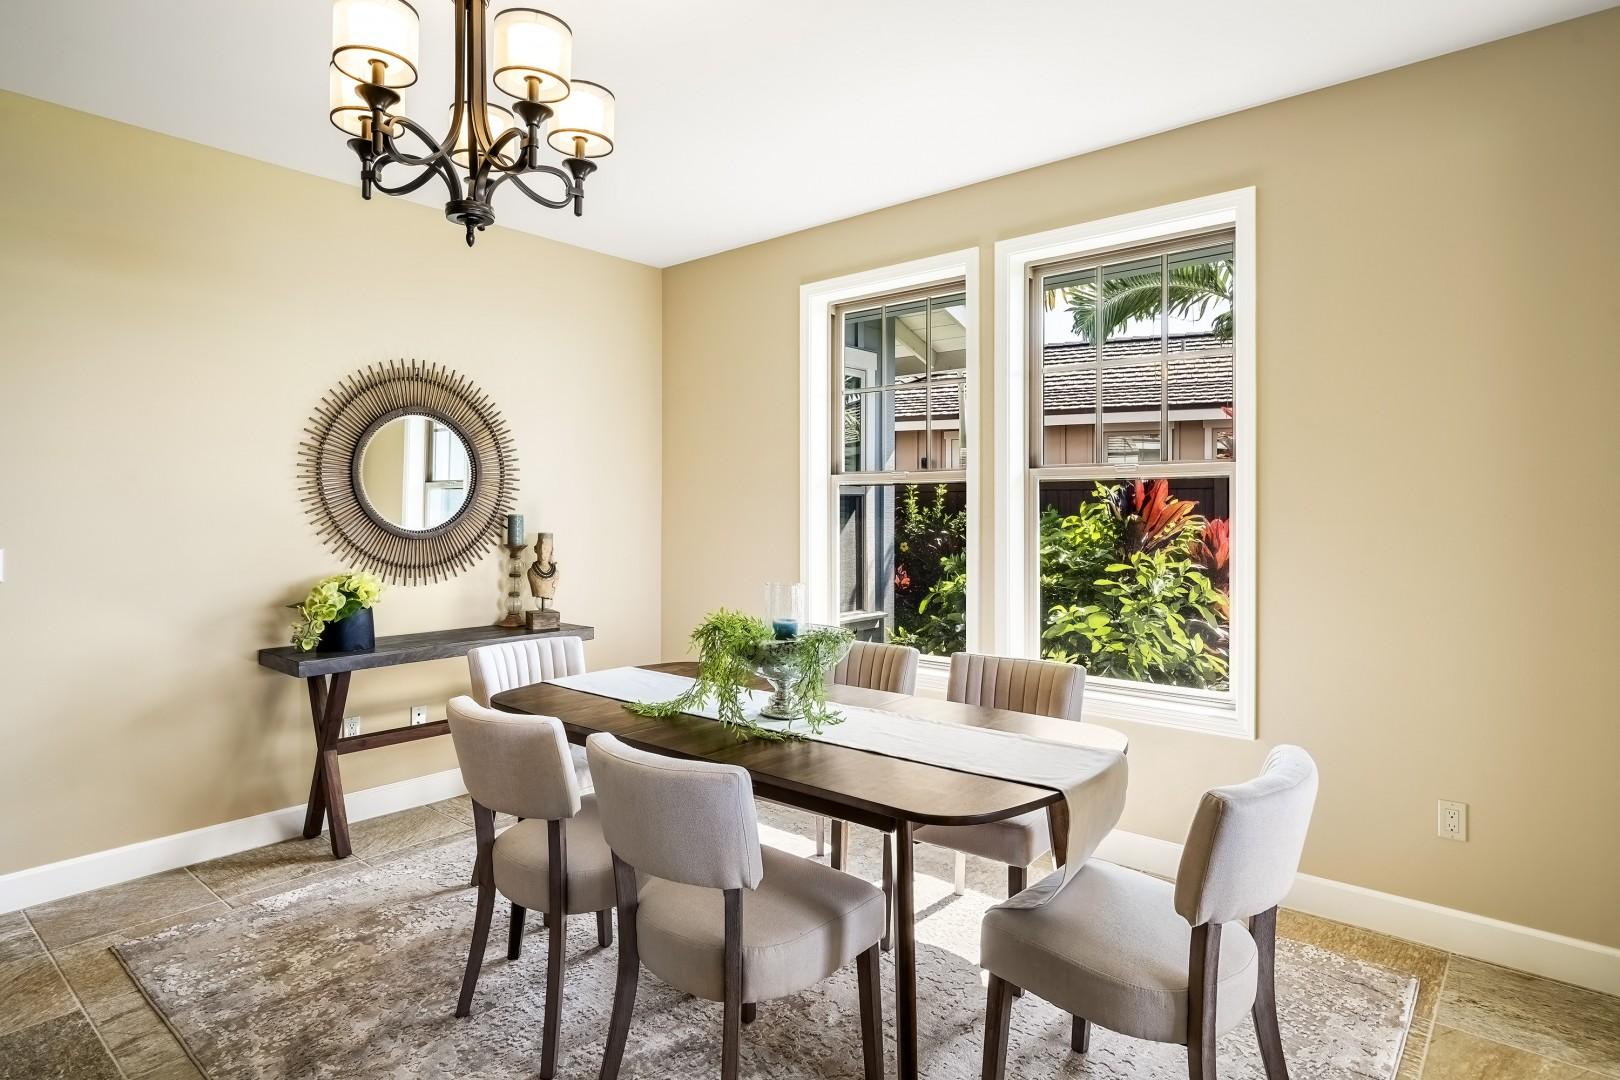 Indoor dining for 6 guests!